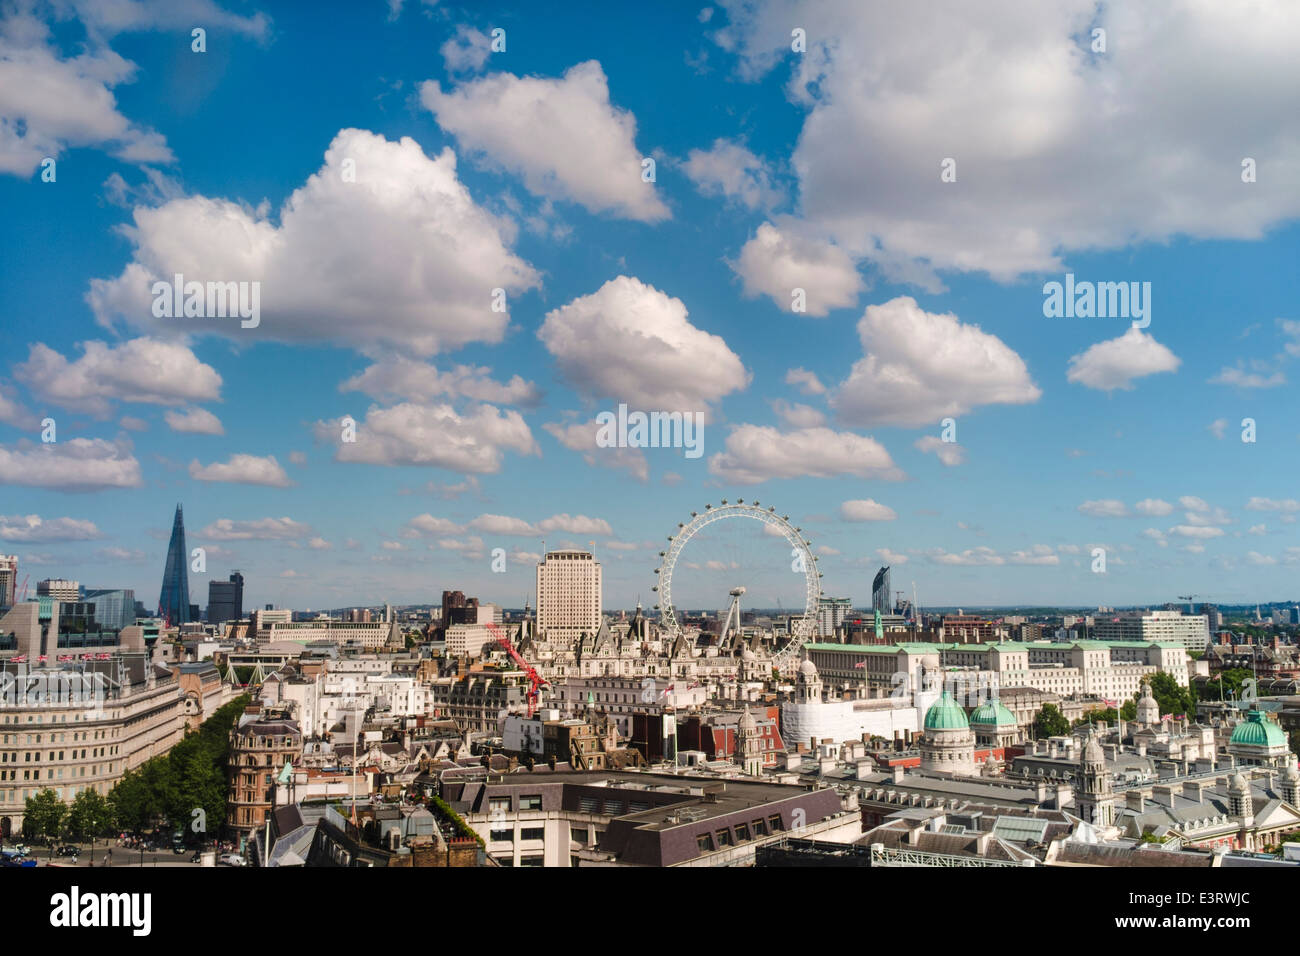 View  across Westminster,  London, UK - Stock Image